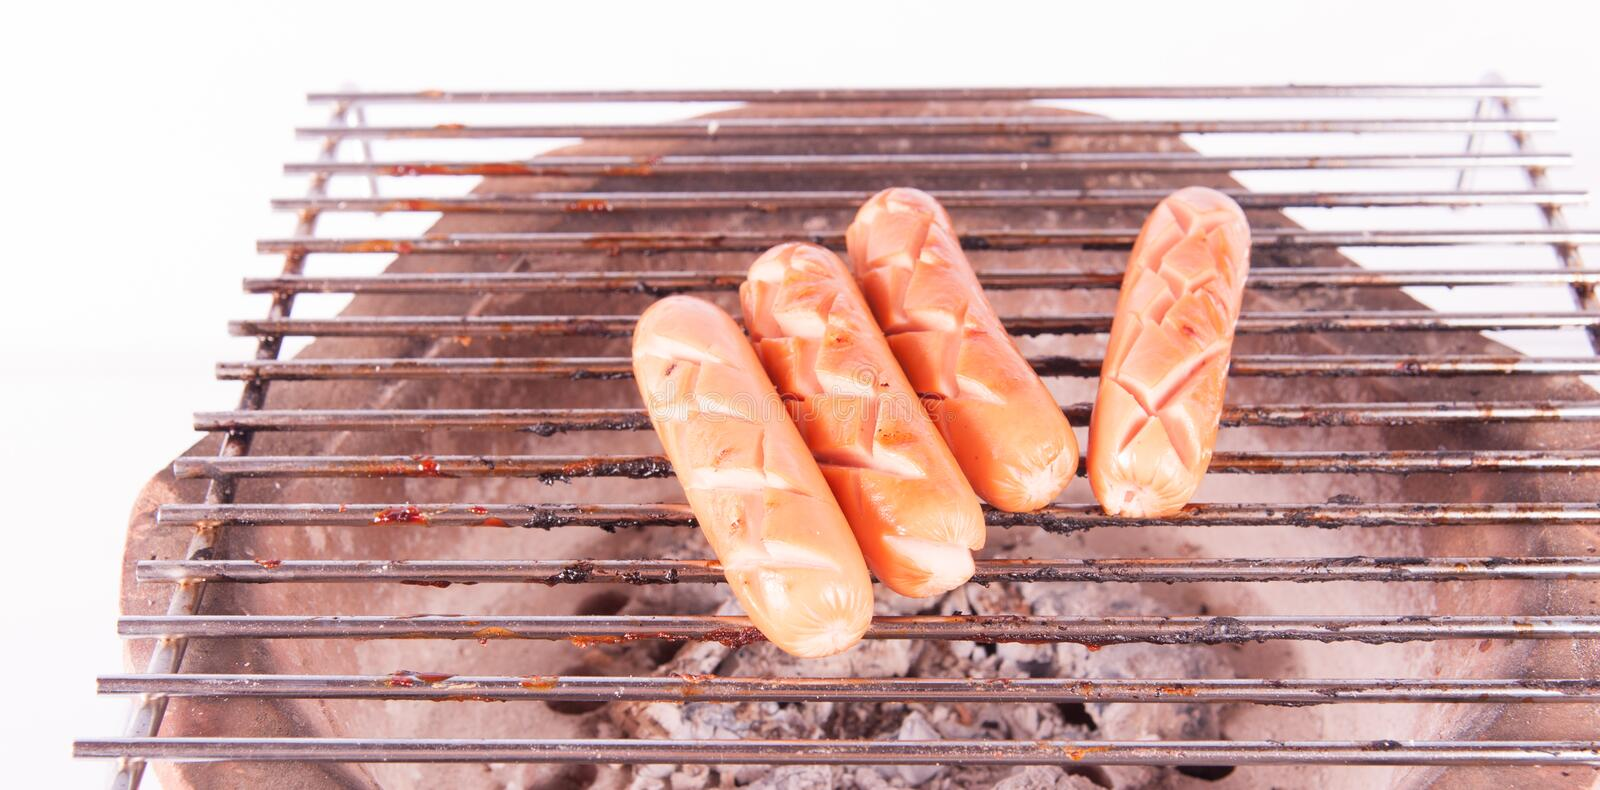 Download Grilled Sausage Over A Hot Barbecue Grill Stock Photo - Image: 30887978